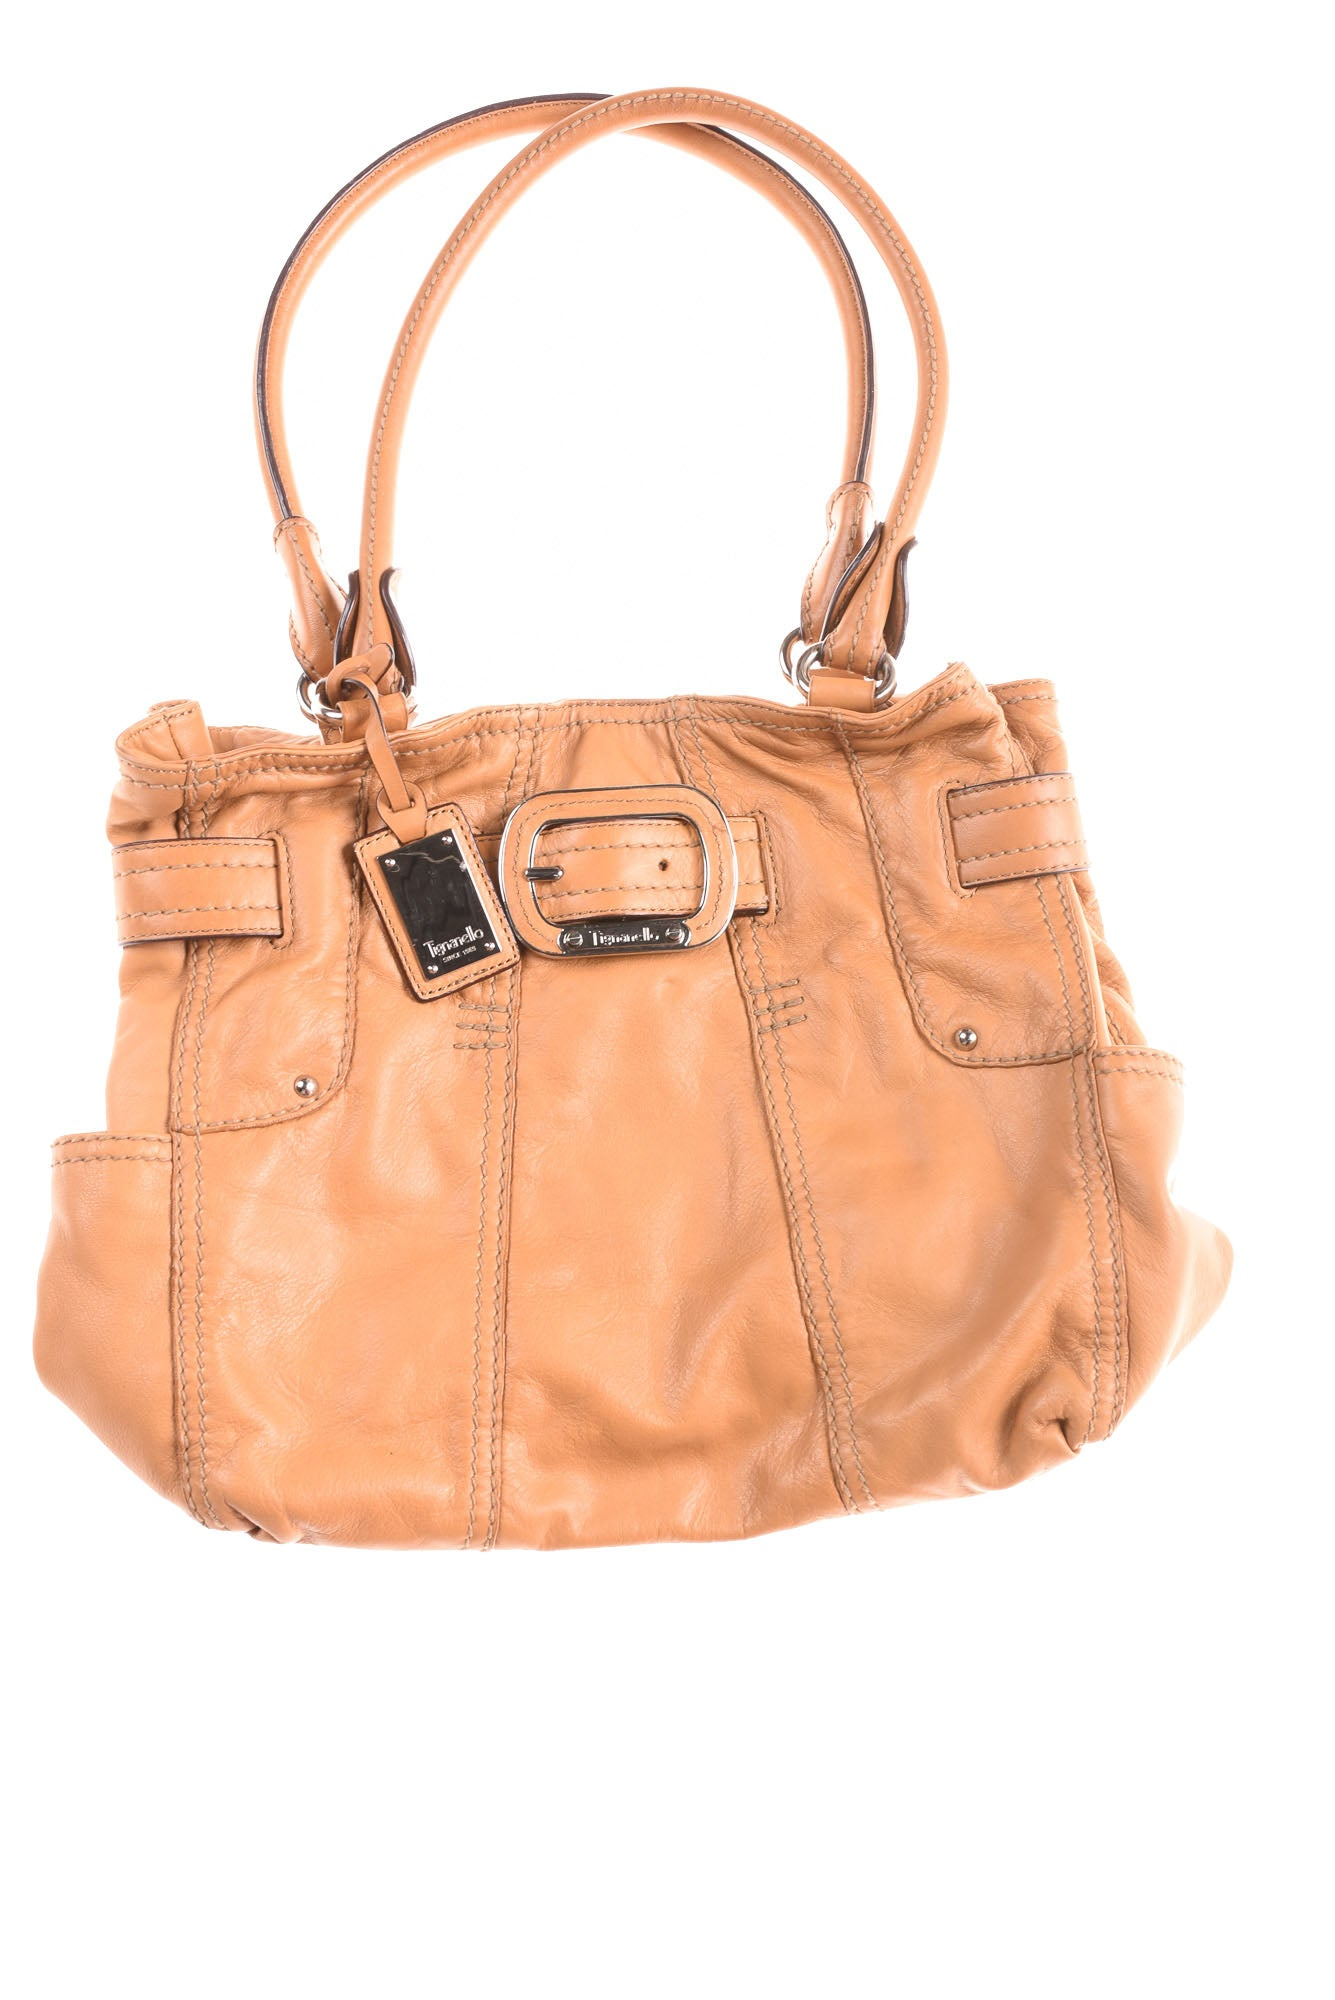 3d4f7b350b USED Tignanello Women s Handbag N A Tan - Village Discount Outlet